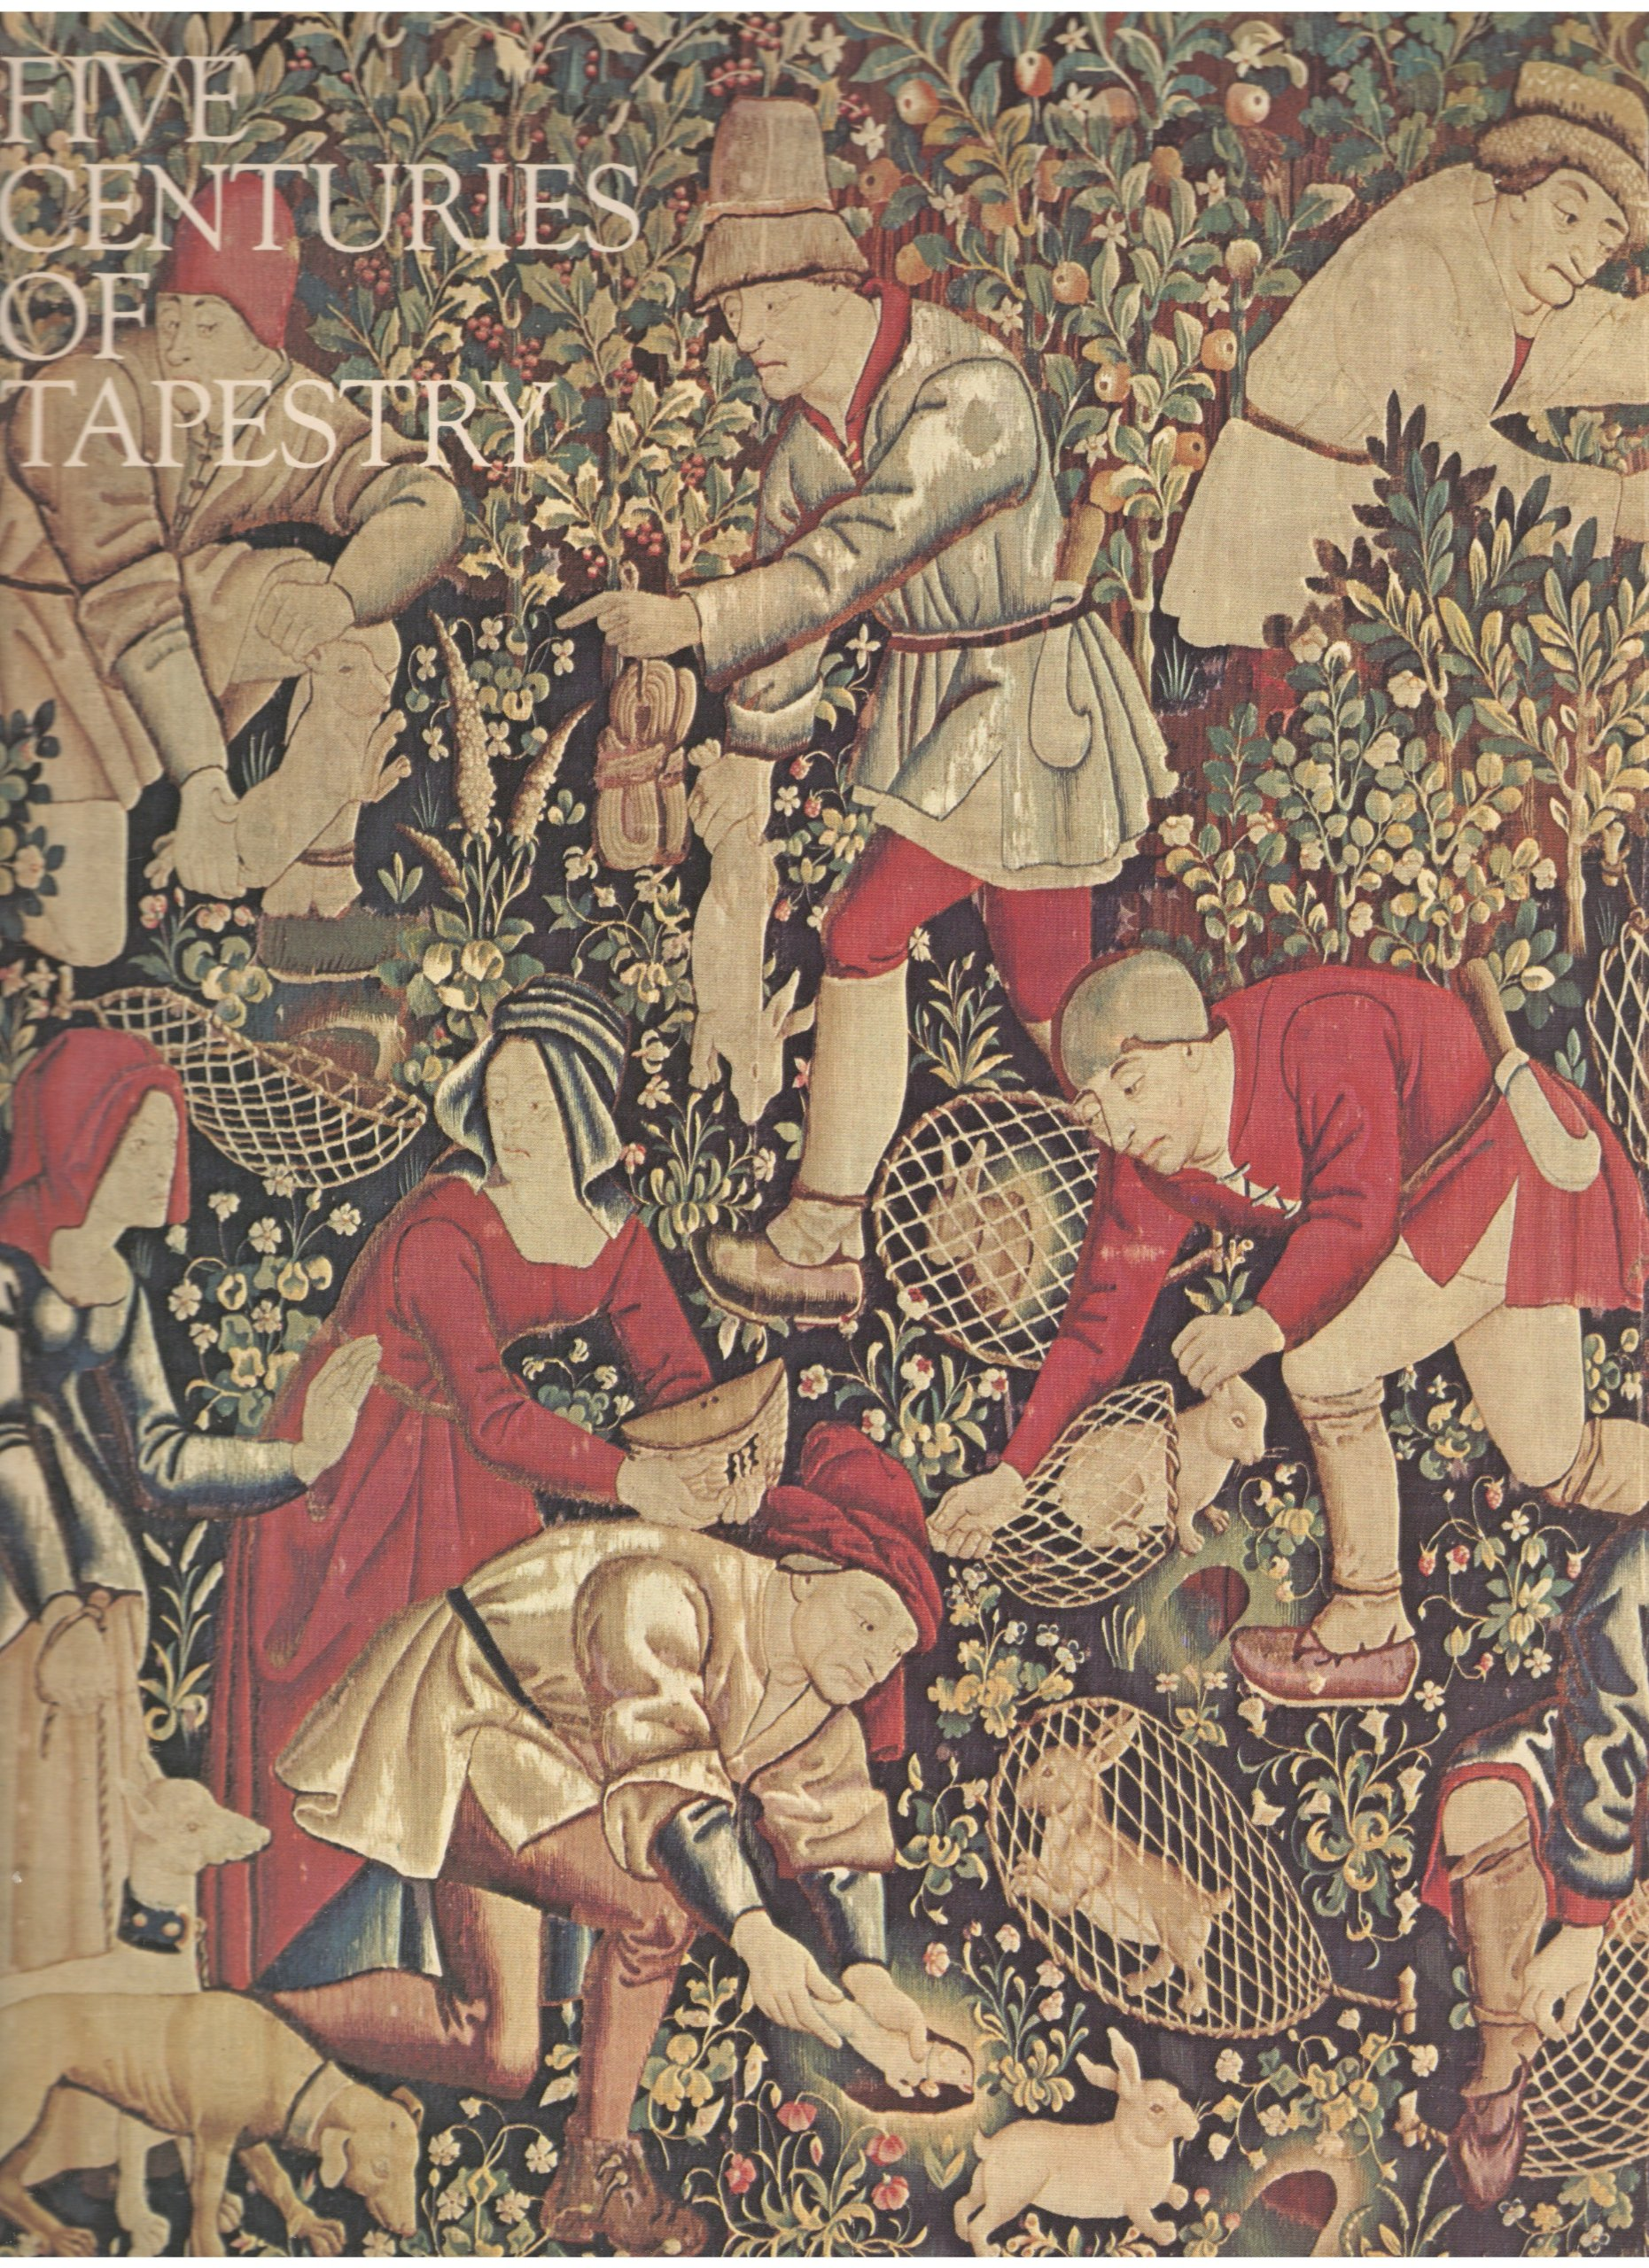 Five centuries of tapestry from the Fine Arts Museums of San Francisco: [catalogue]